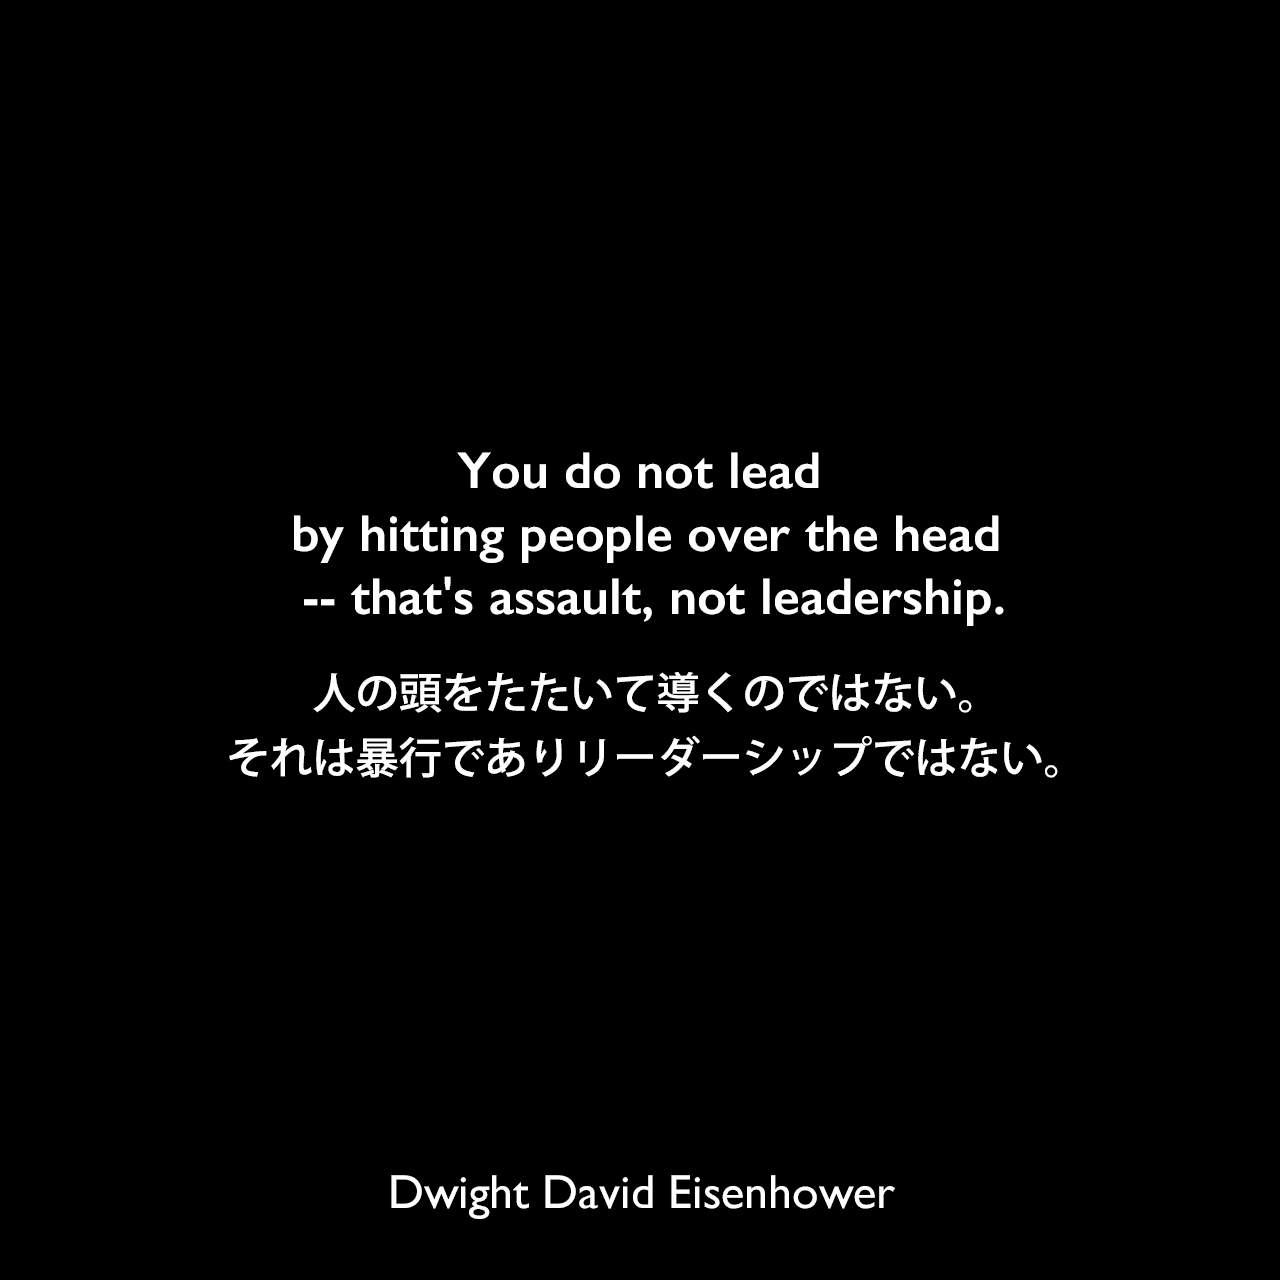 You do not lead by hitting people over the head -- that's assault, not leadership.人の頭をたたいて導くのではない。それは暴行でありリーダーシップではない。Dwight David Eisenhower